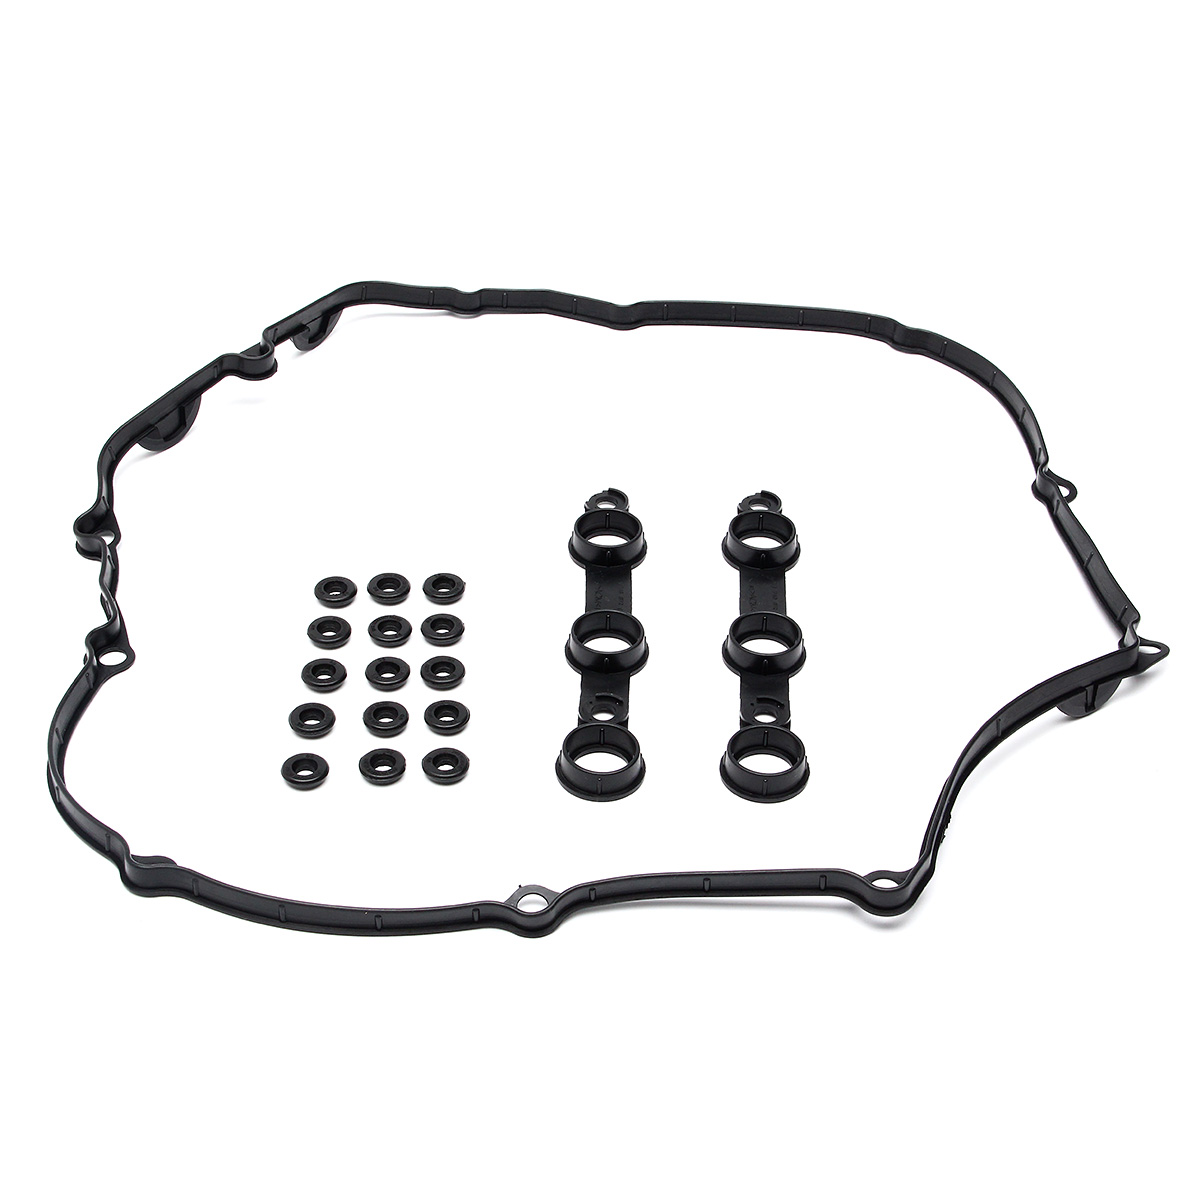 Engine Valve Cover Gasket Set 15 Valve Cover Washer For